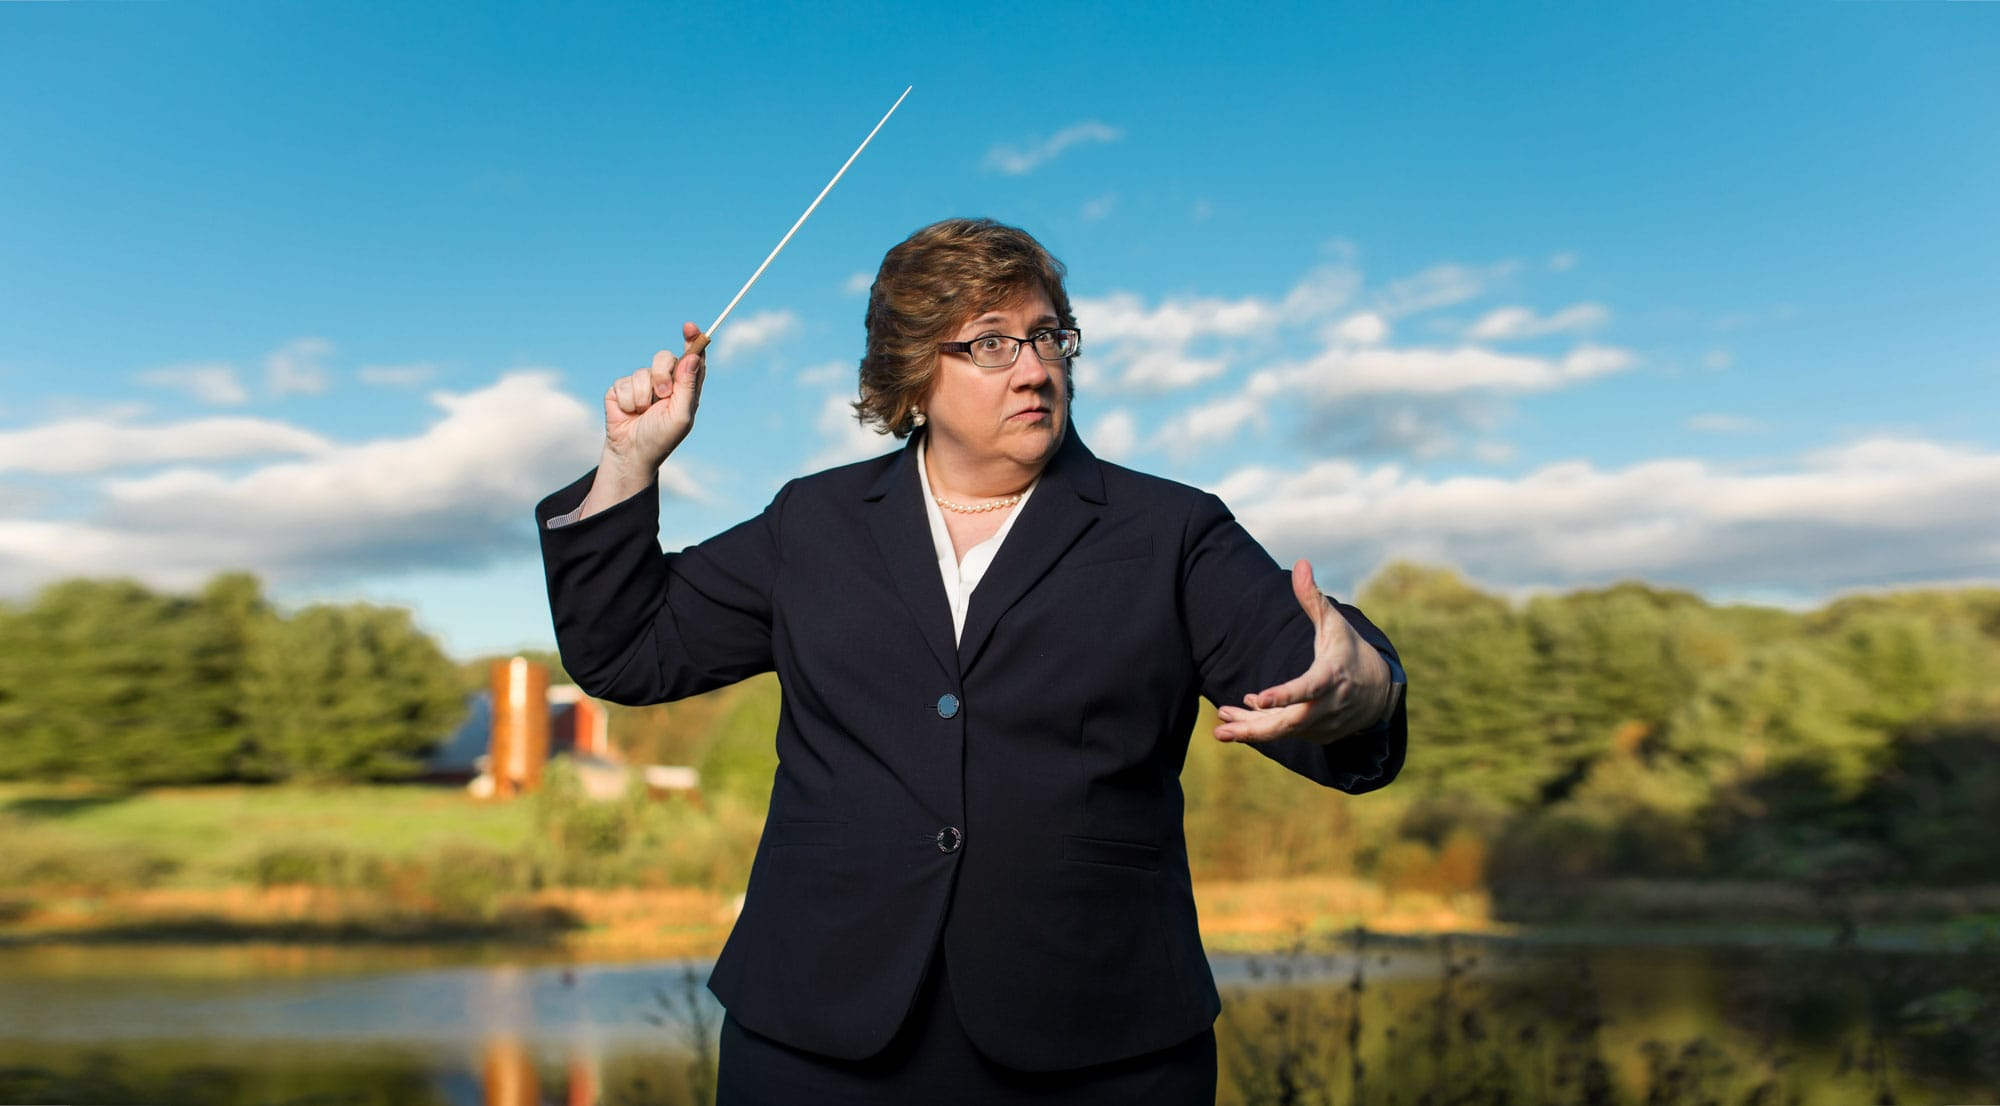 Elisa Koehler - Professional Trumpeter & Conductor | Professor of Music and Assistant Director of the Center for Dance, Music, and Theatre at Goucher College in Baltimore, Maryland